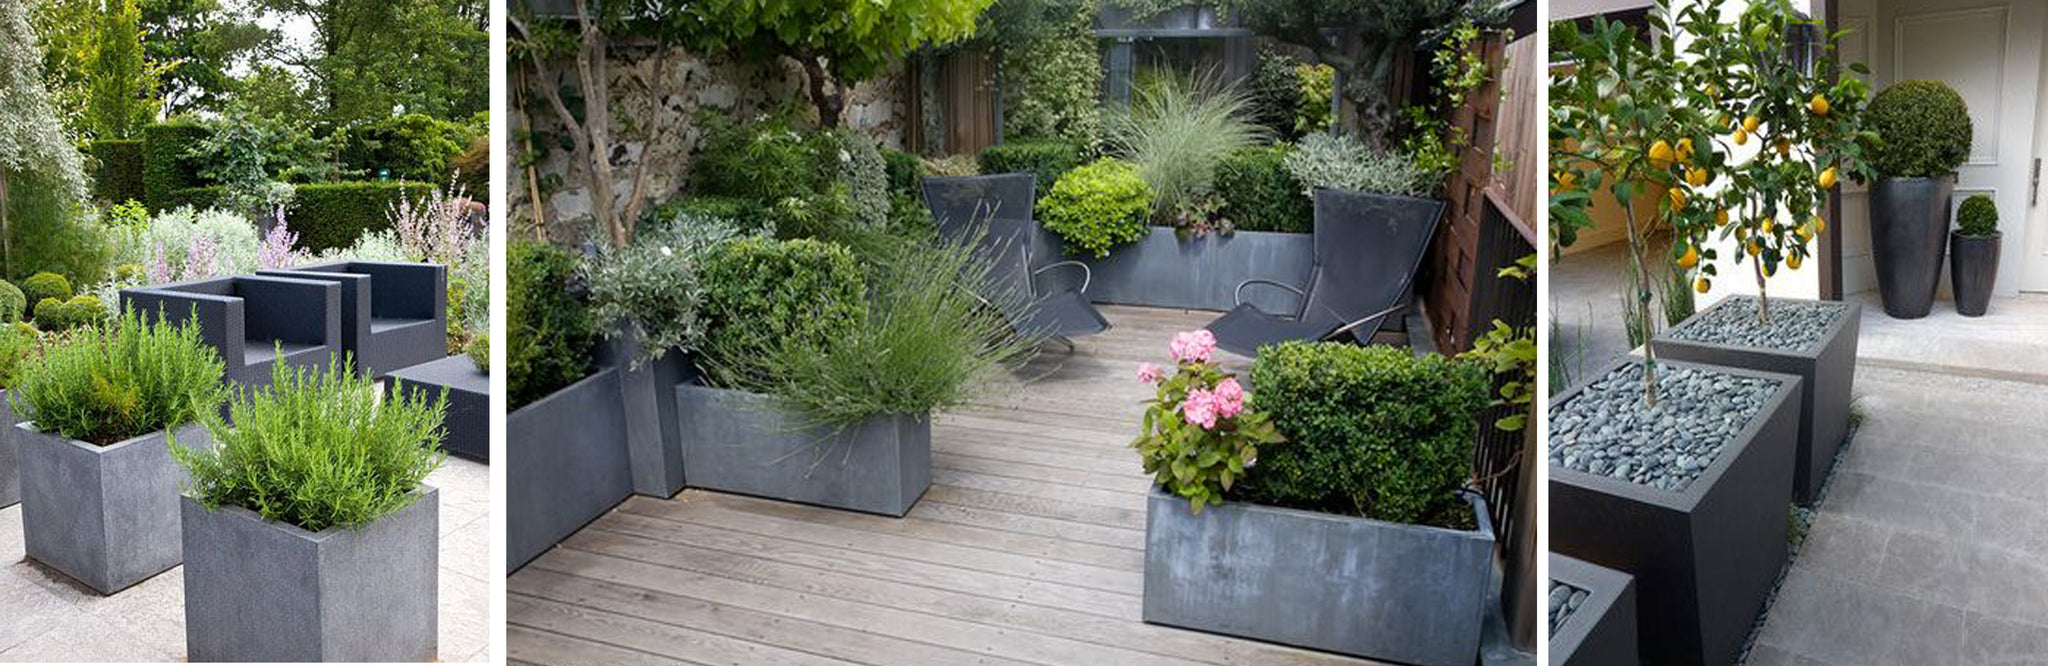 modern decorative outdoor planter diy landscape planters and of stand succulent ideas around black fixer beads wooden remodel pentagon foliages a with stone upper kinds the various for indoor craftsman